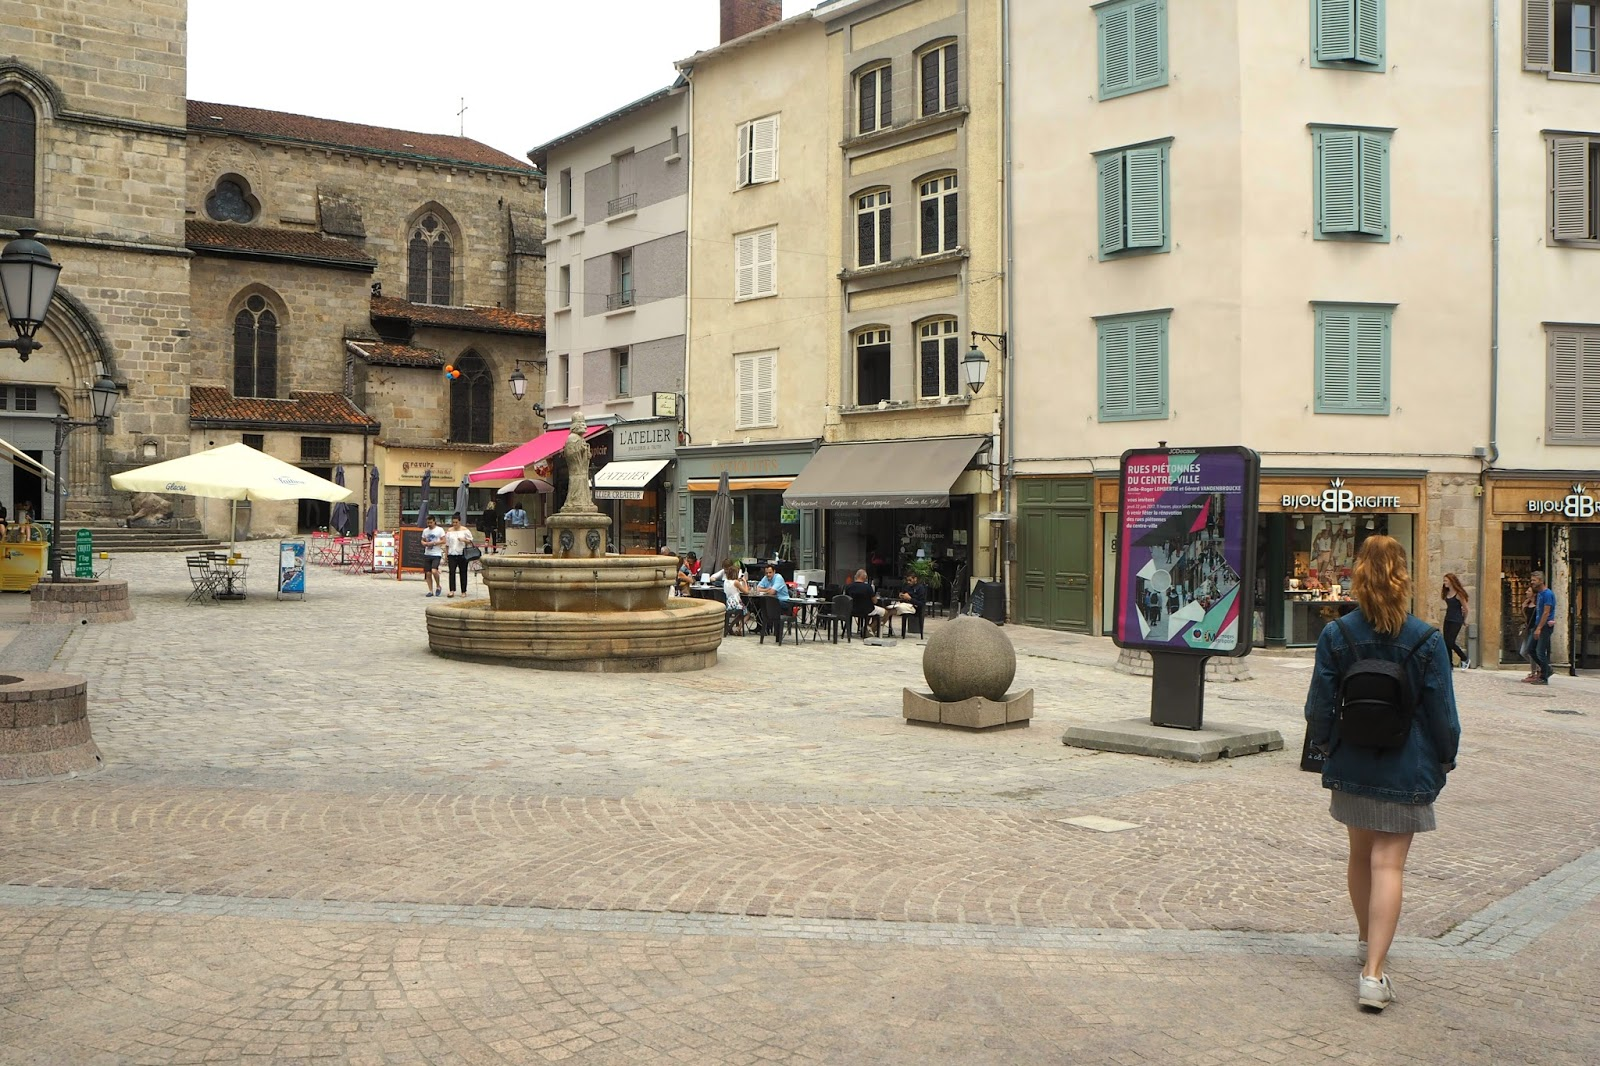 Church square in Limoges